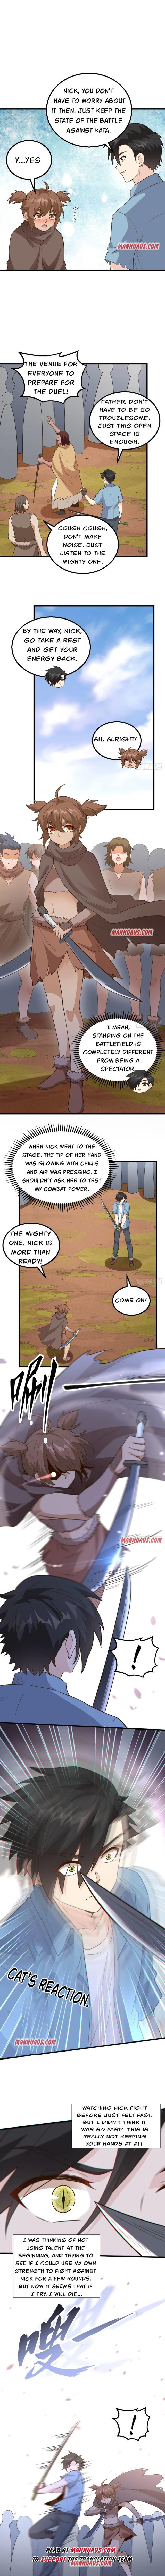 Survive On A Deserted Island With Beautiful Girls Chapter 96 page 4 - Mangakakalots.com